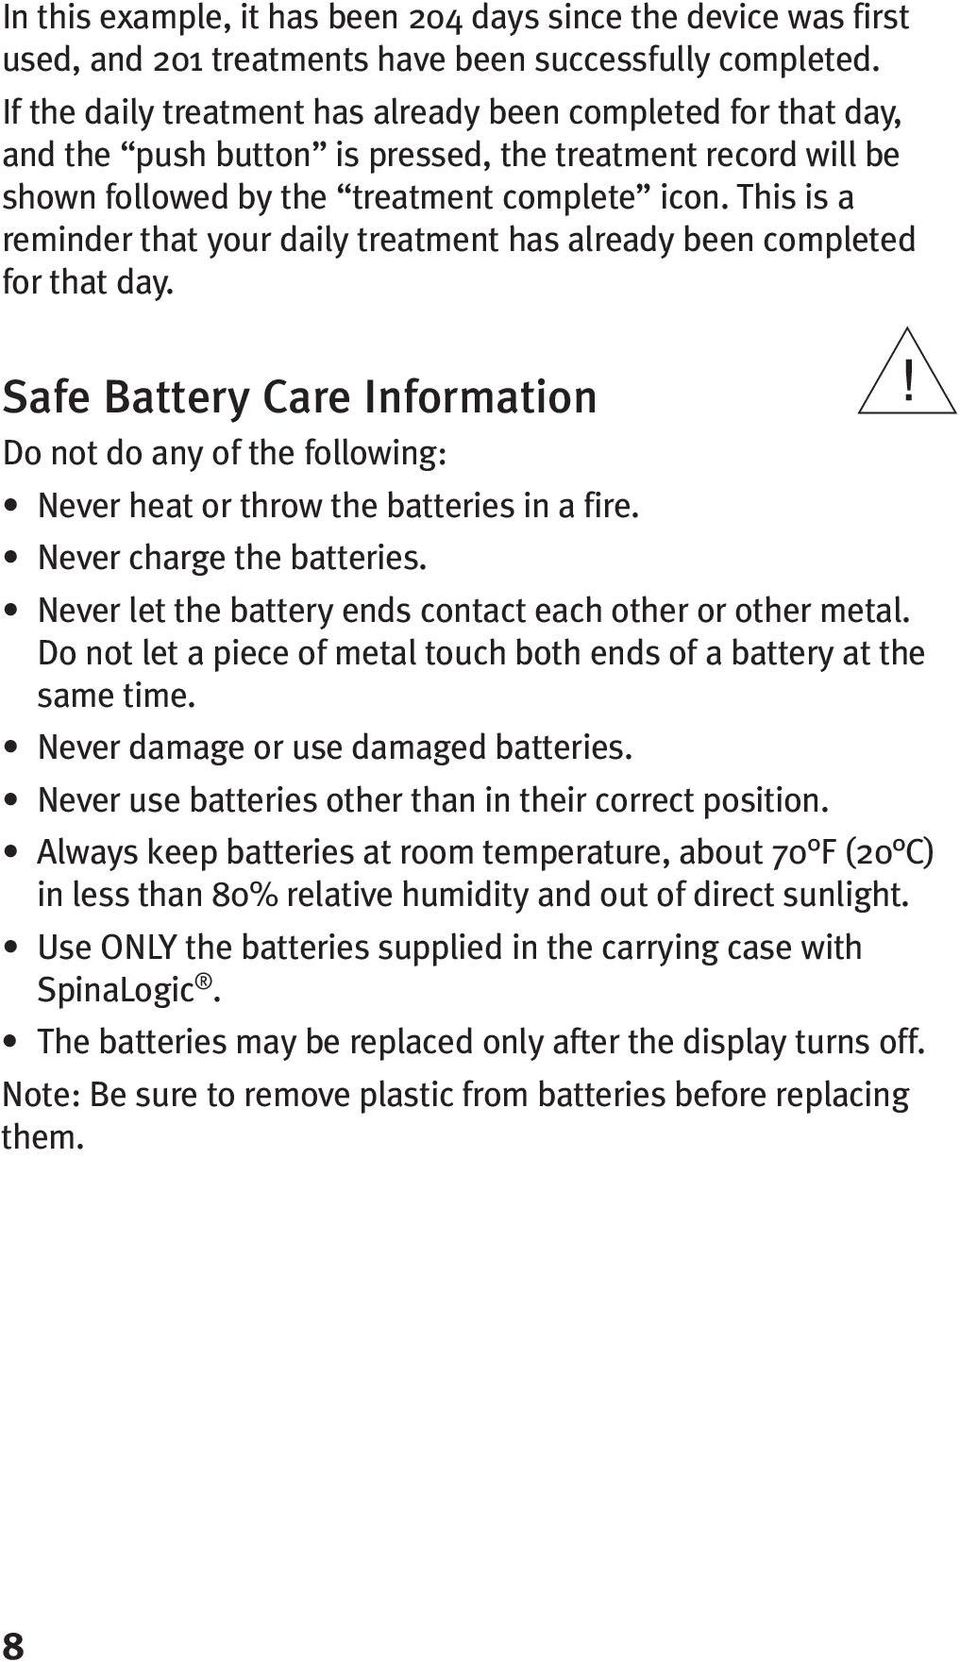 This is a reminder that your daily treatment has already been completed for that day. Safe Battery Care Information Do not do any of the following: Never heat or throw the batteries in a fire.